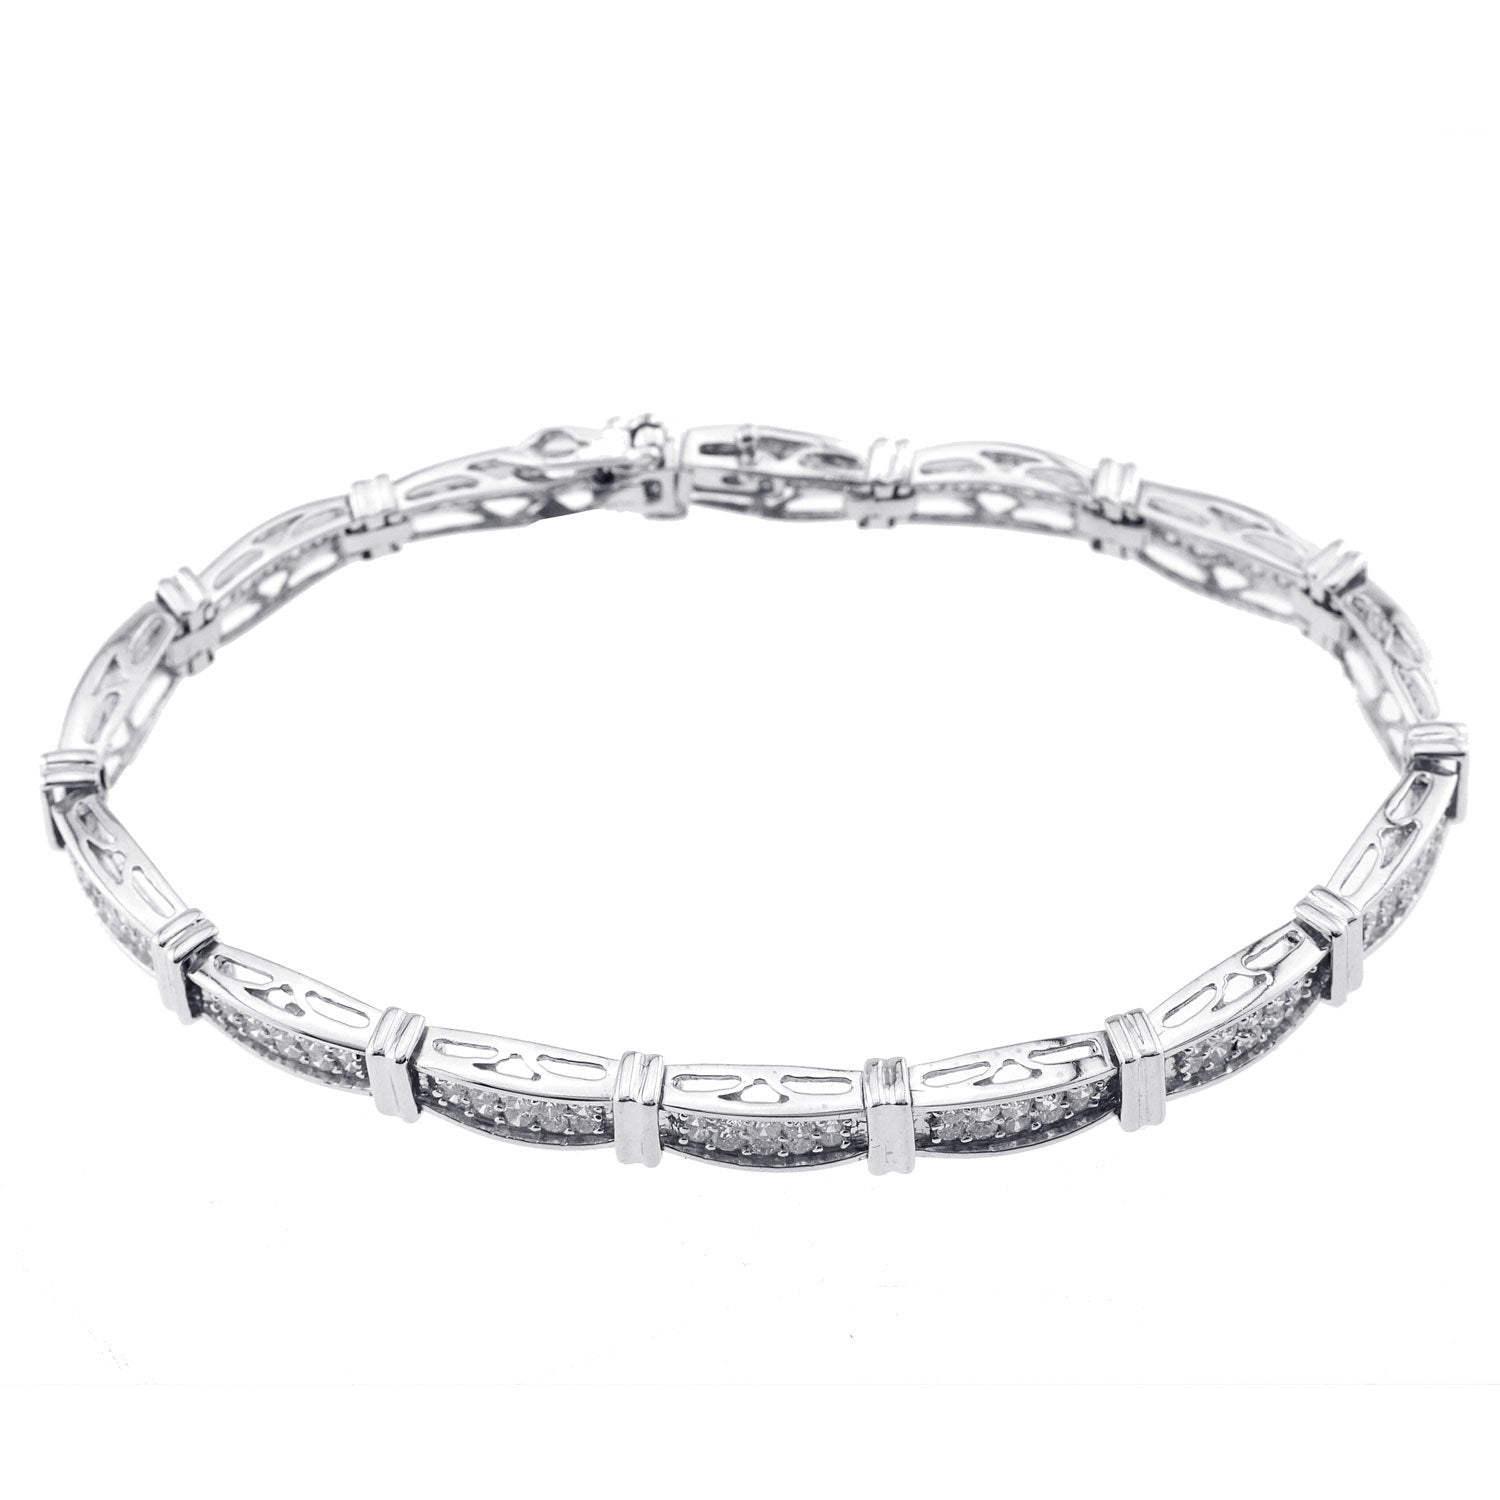 14K White Gold Princess Cut Diamond Bracelet With 7.50CT